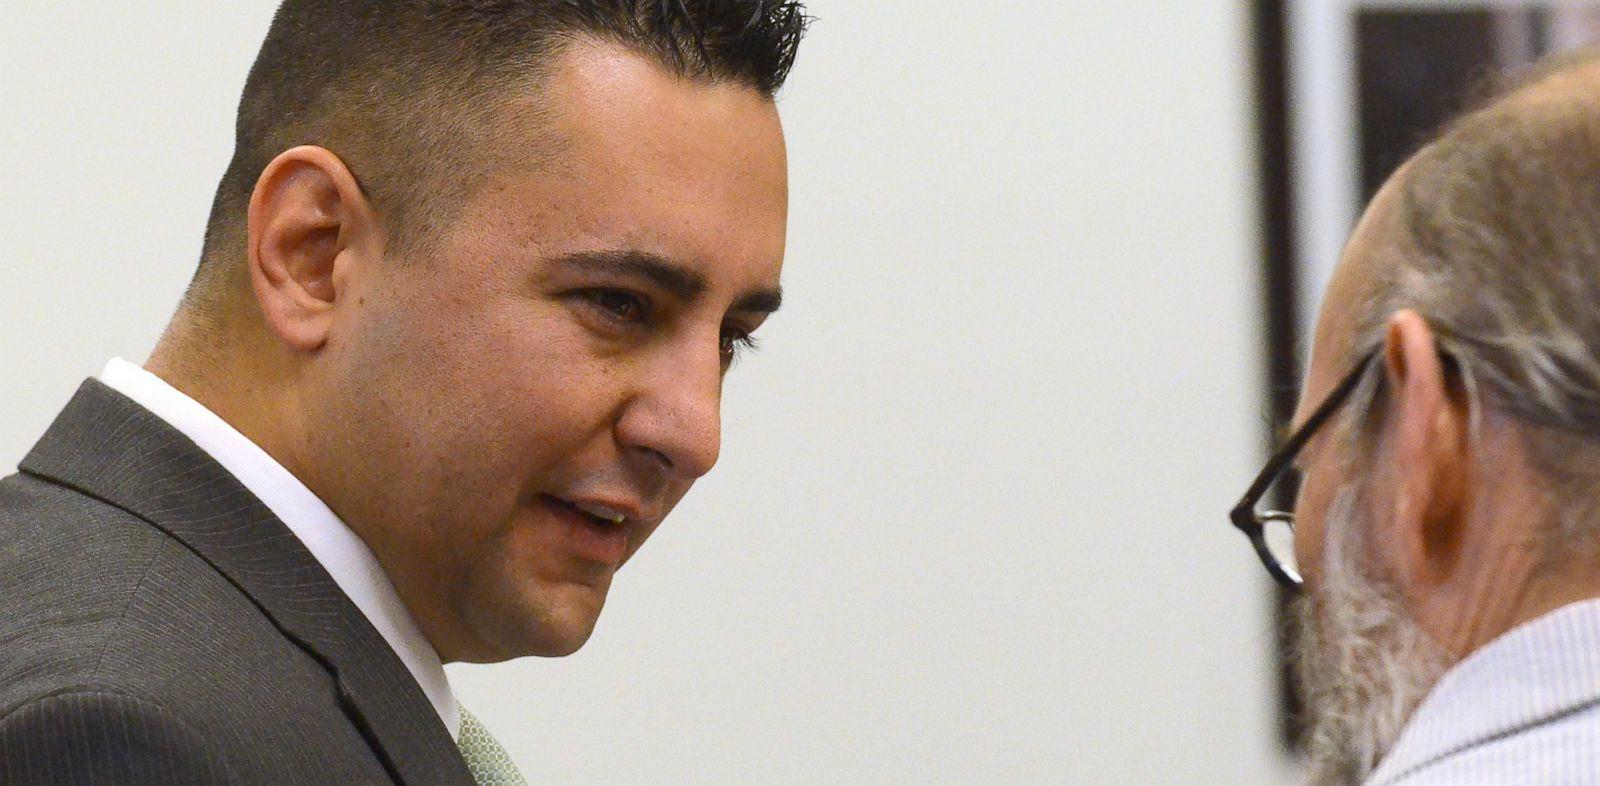 PHOTO: Former Albuquerque Police Officer Levi Chavez enters court on June 13, 2013 in Bernalillo, N.M.